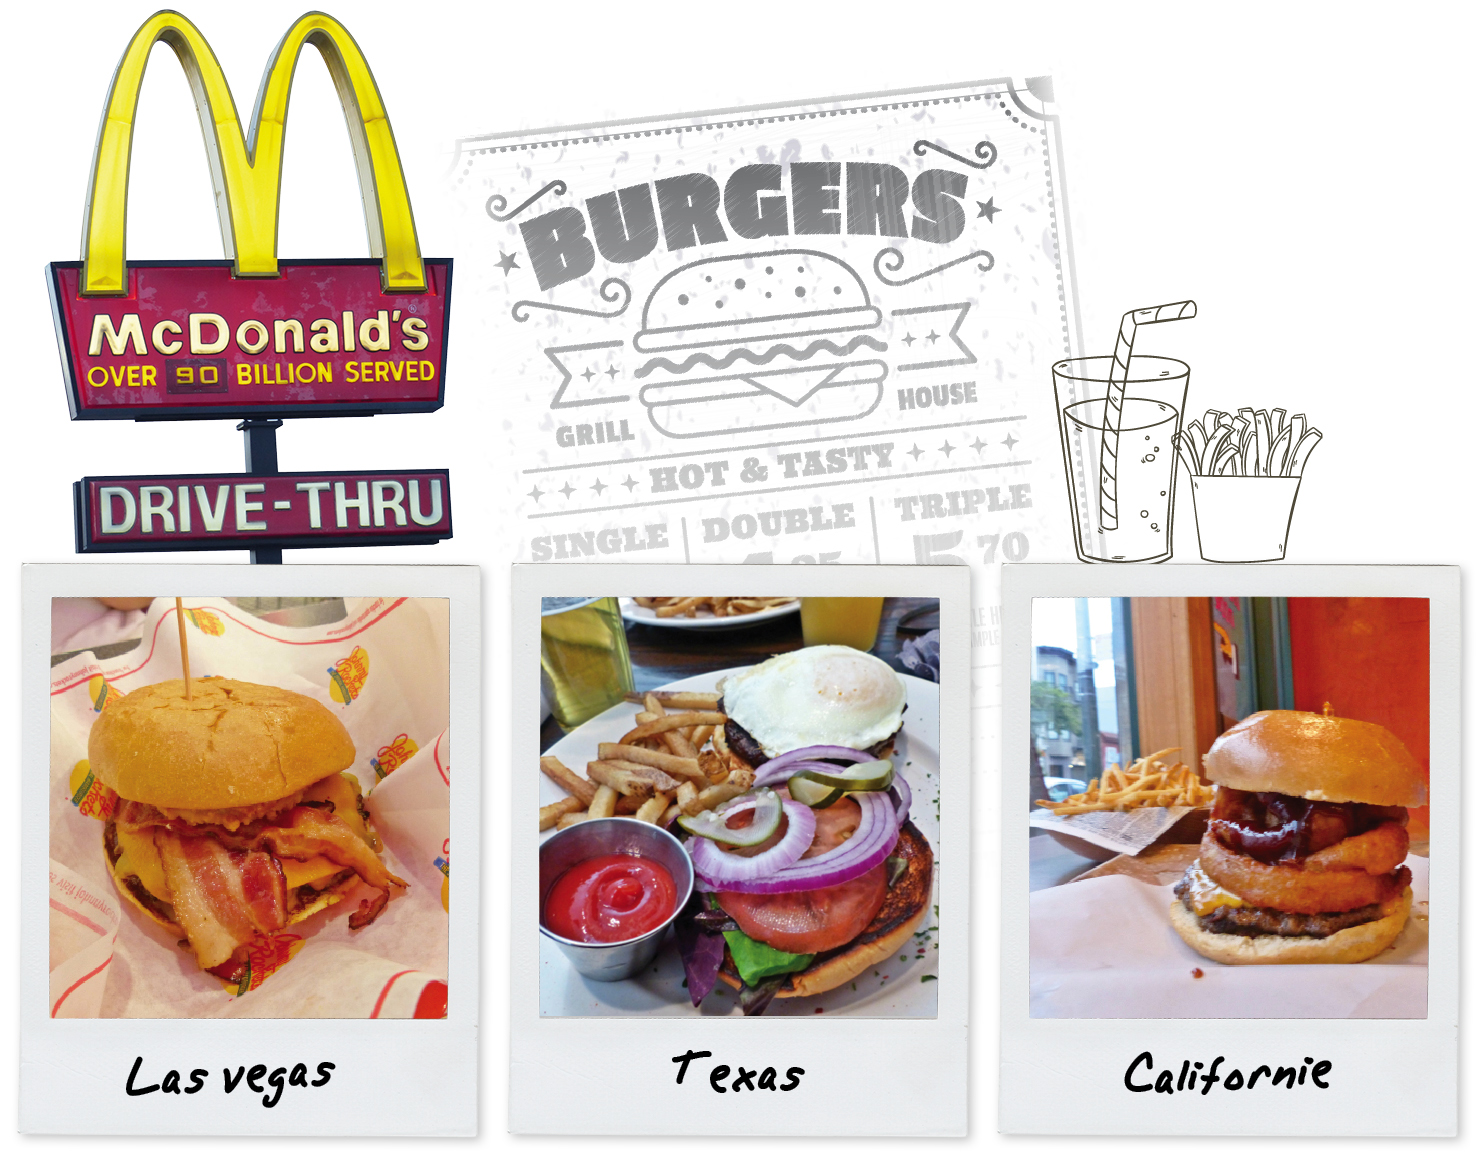 usa, food, fast food, hamburger, burgers, cheeseburger, frites, voyage, road trip